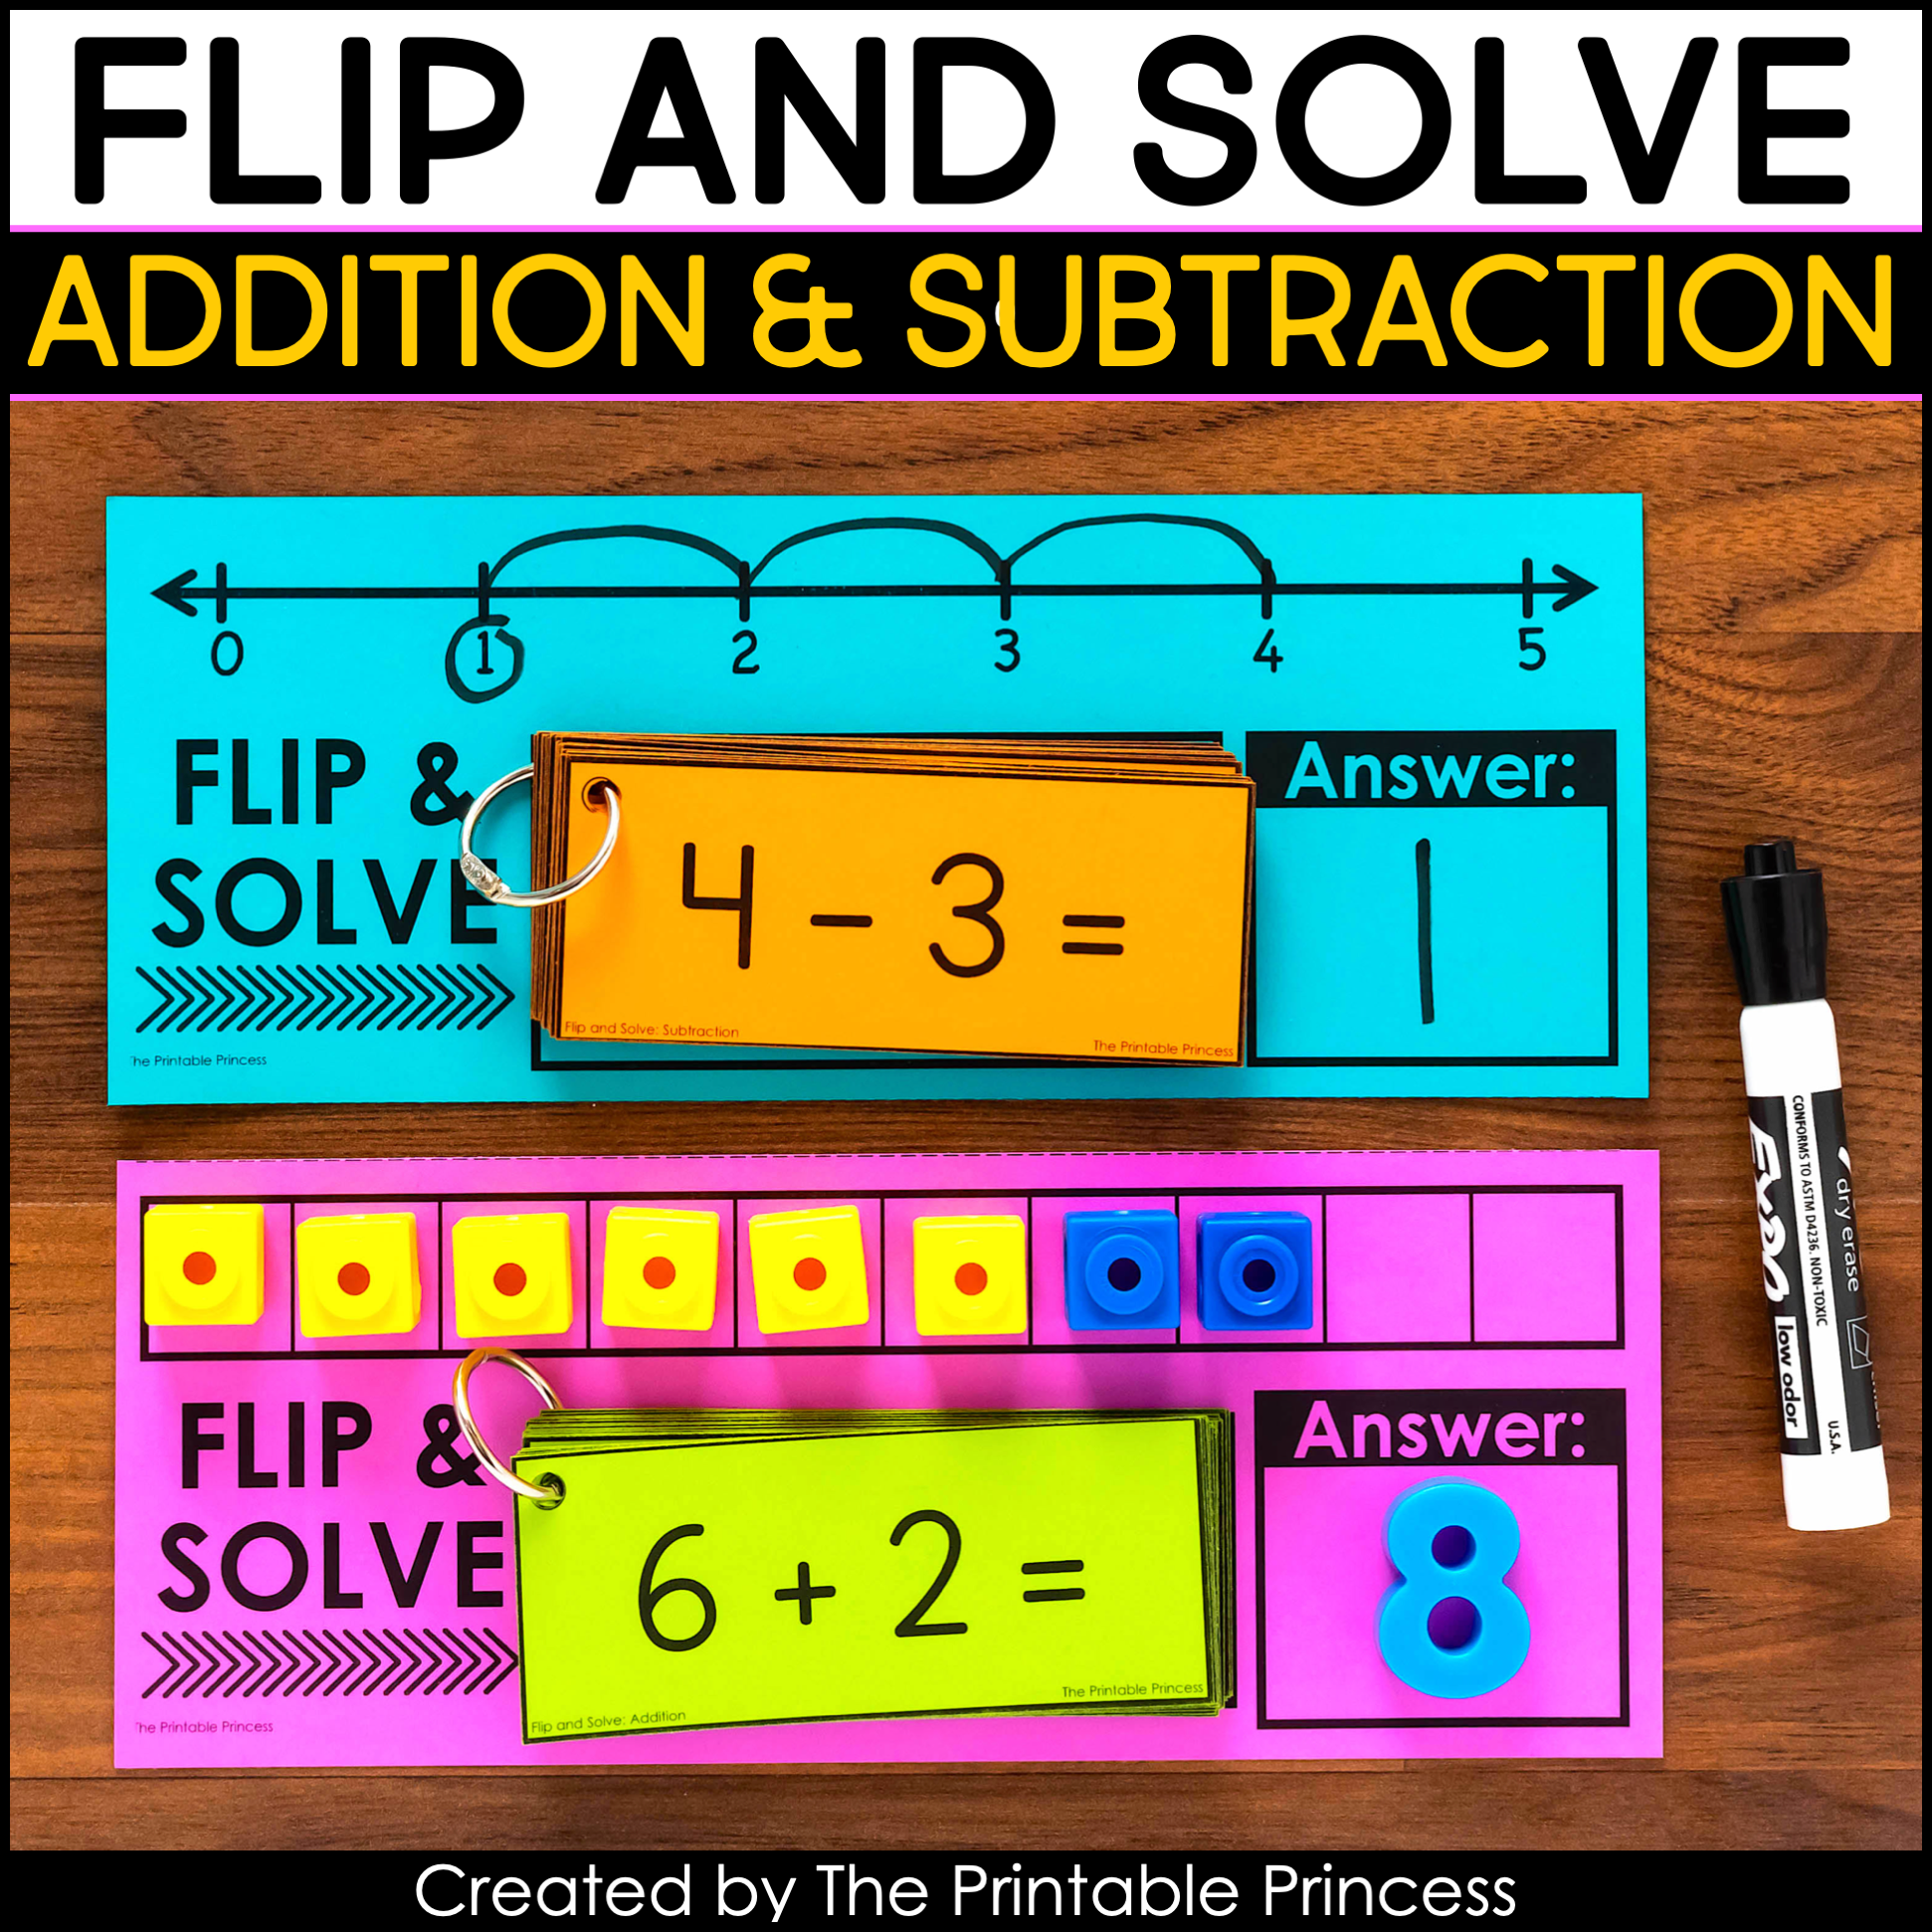 Flip And Solve With Addition And Subtraction Flash Cards The Printable Princess